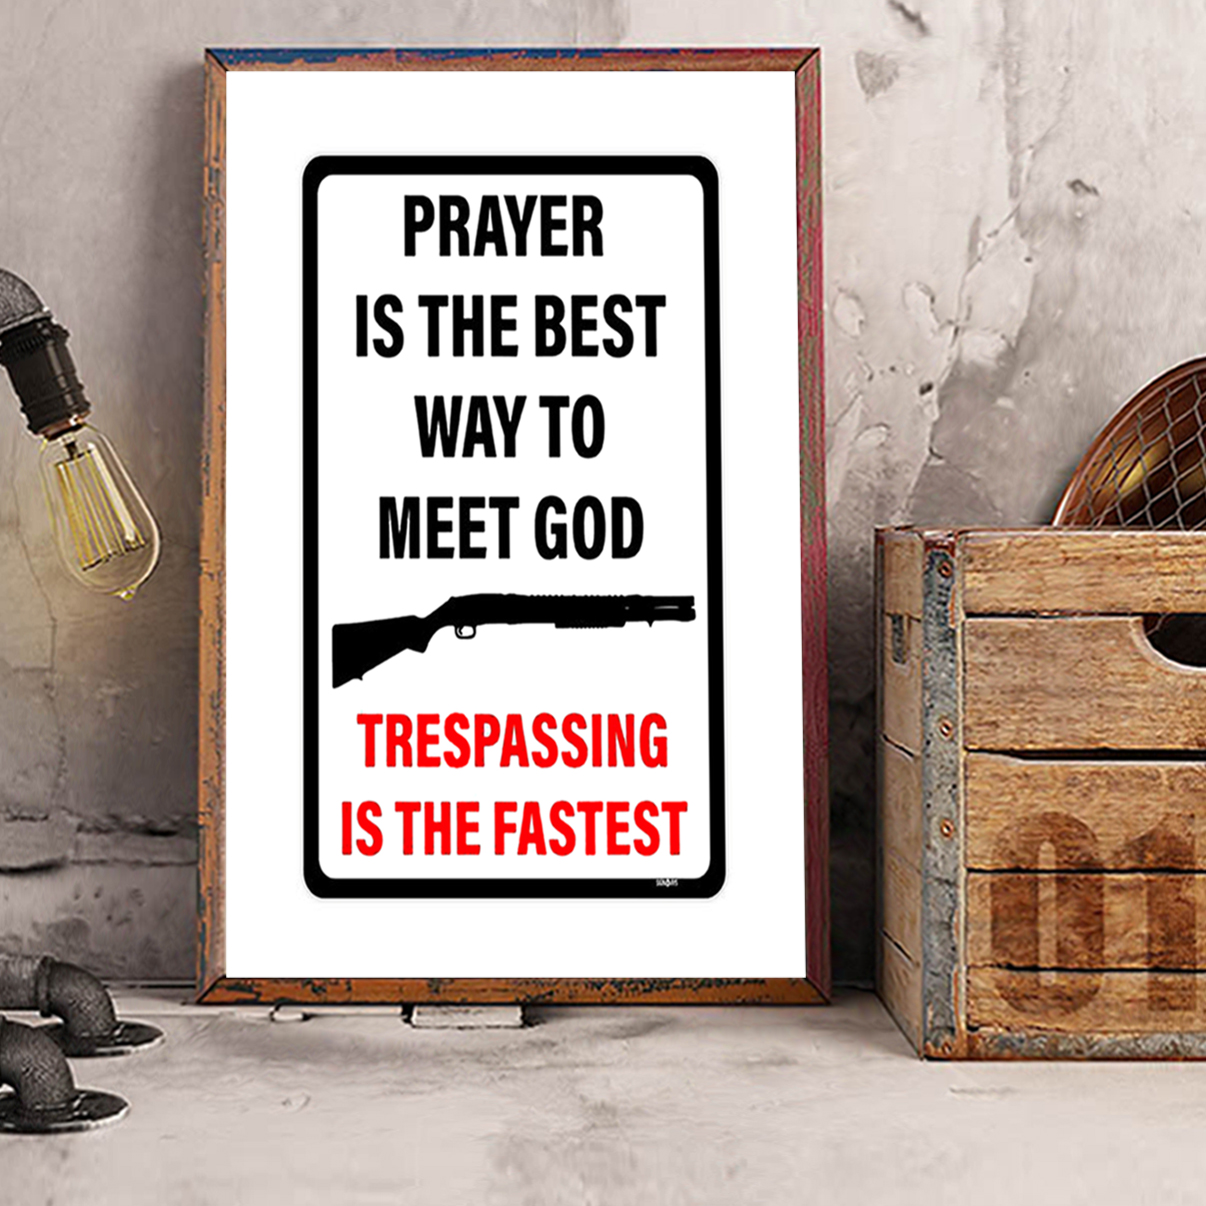 Prayer is the best way to meet god trespassing is the fastest poster